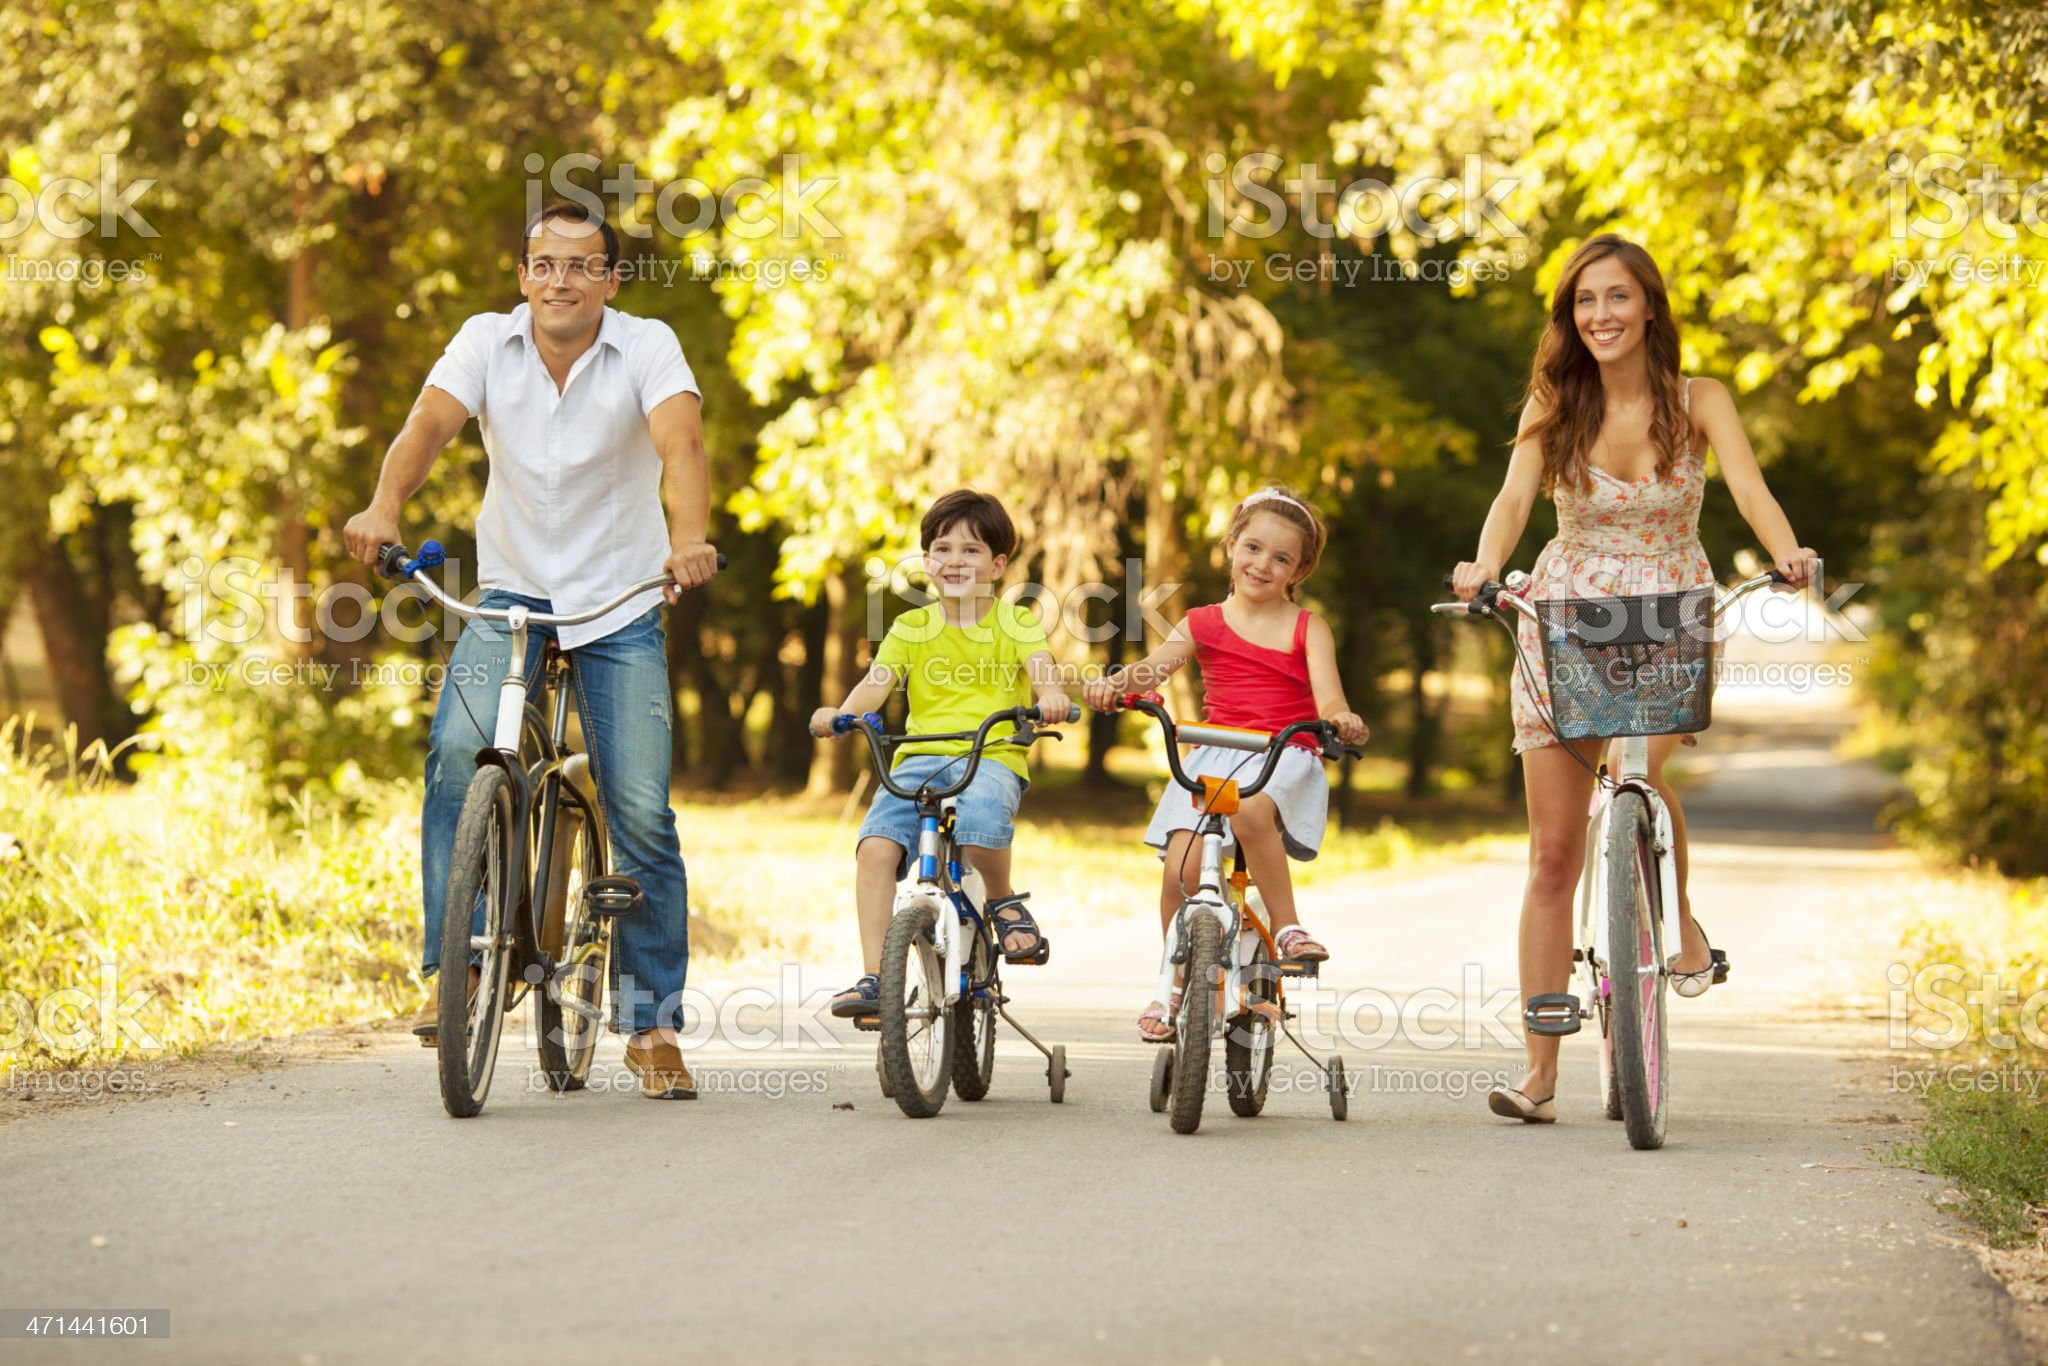 Happy Family Riding Bicycles Outdoors. royalty-free stock photo